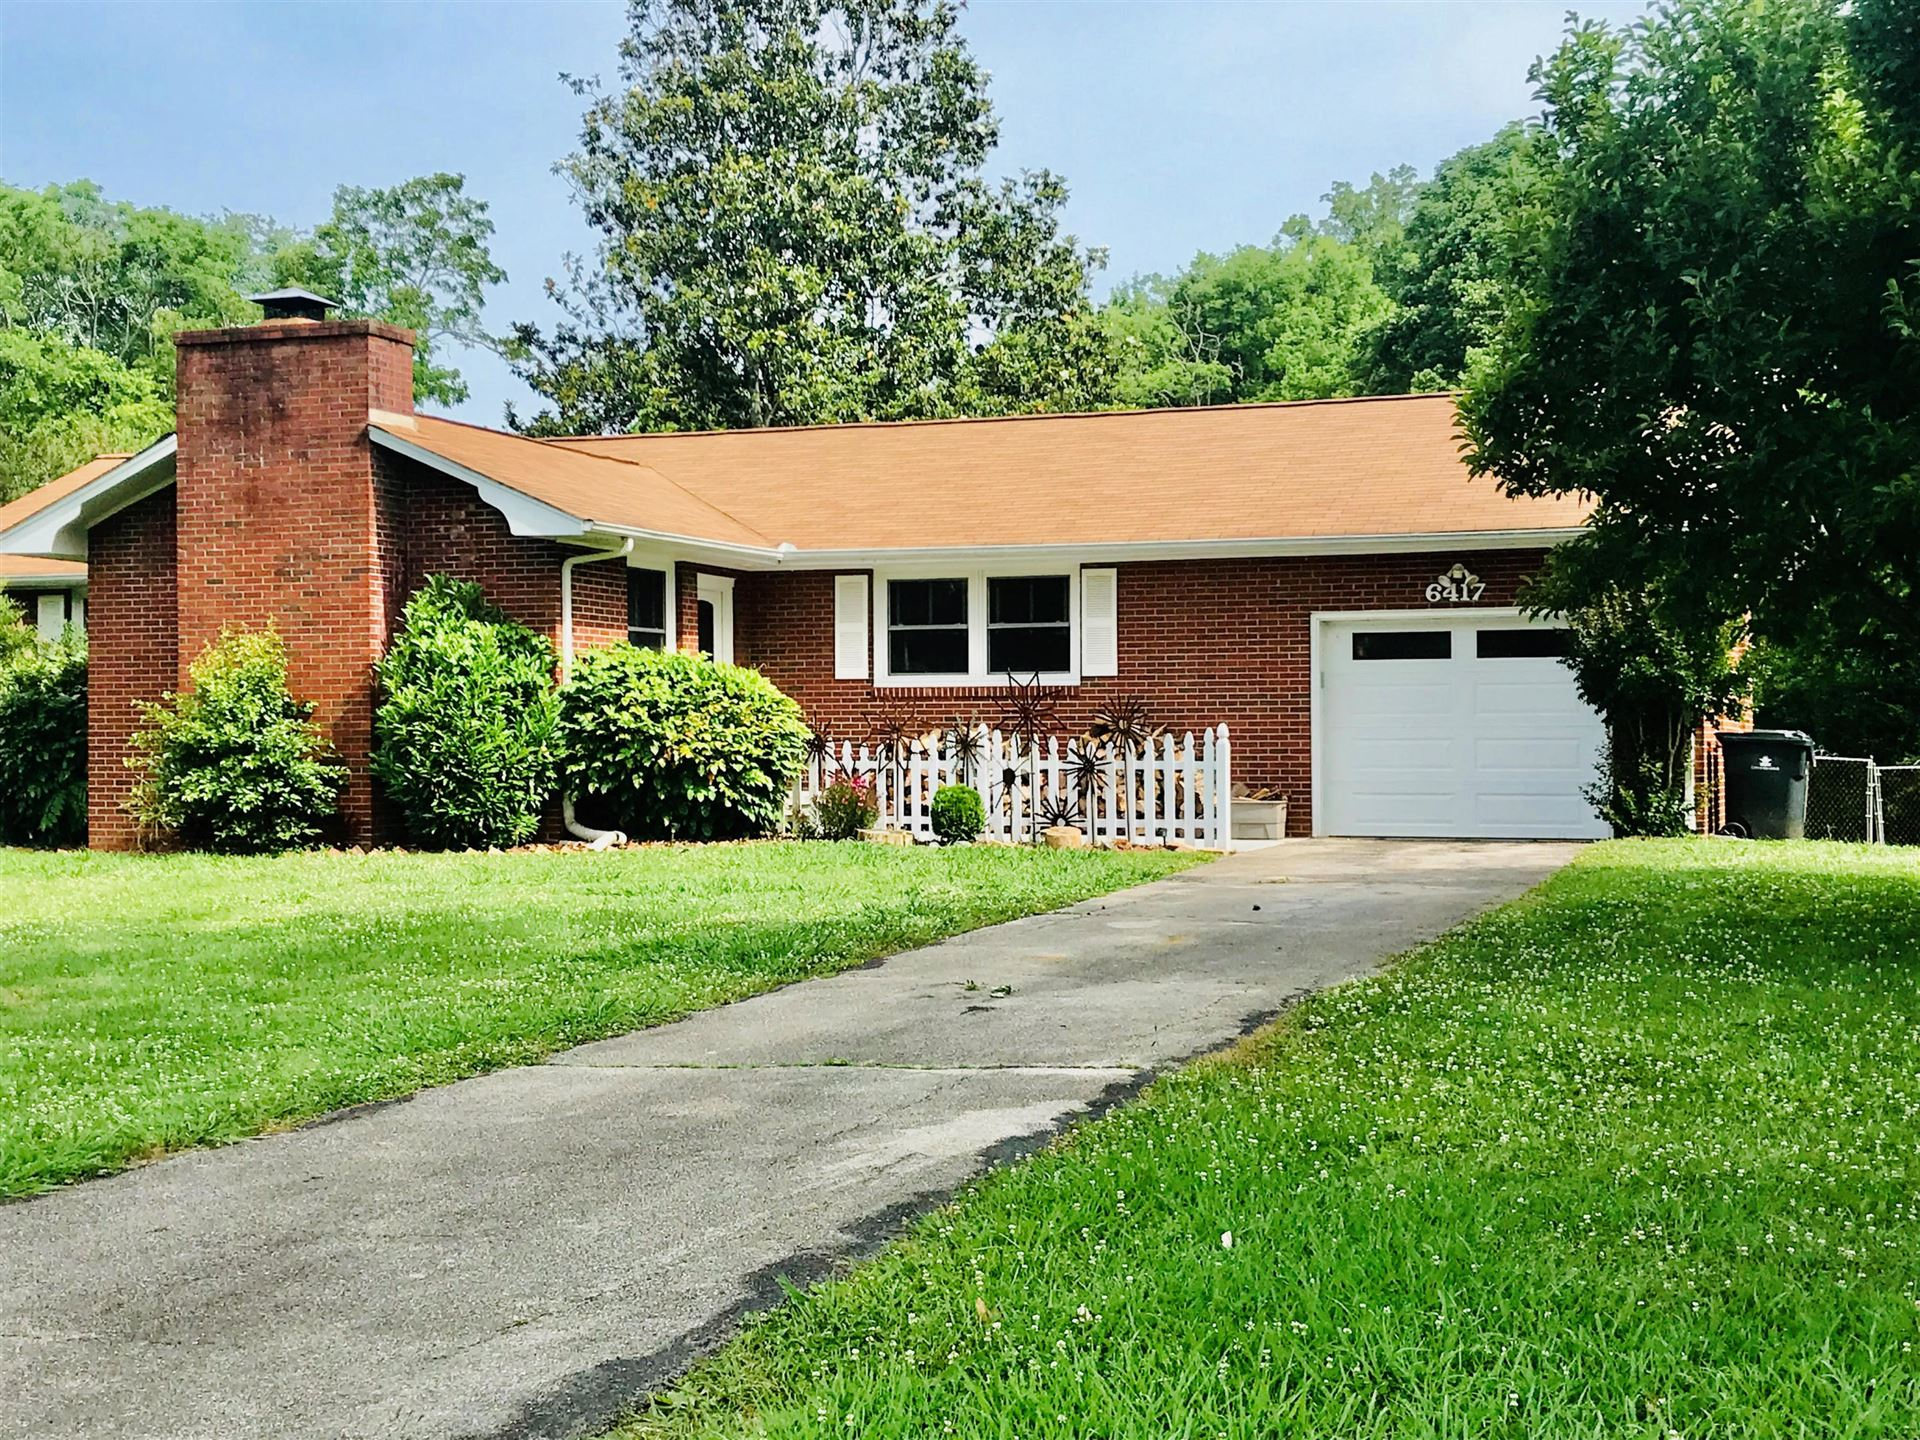 Photo of 6417 Shetland Drive, Knoxville, TN 37920 (MLS # 1140949)